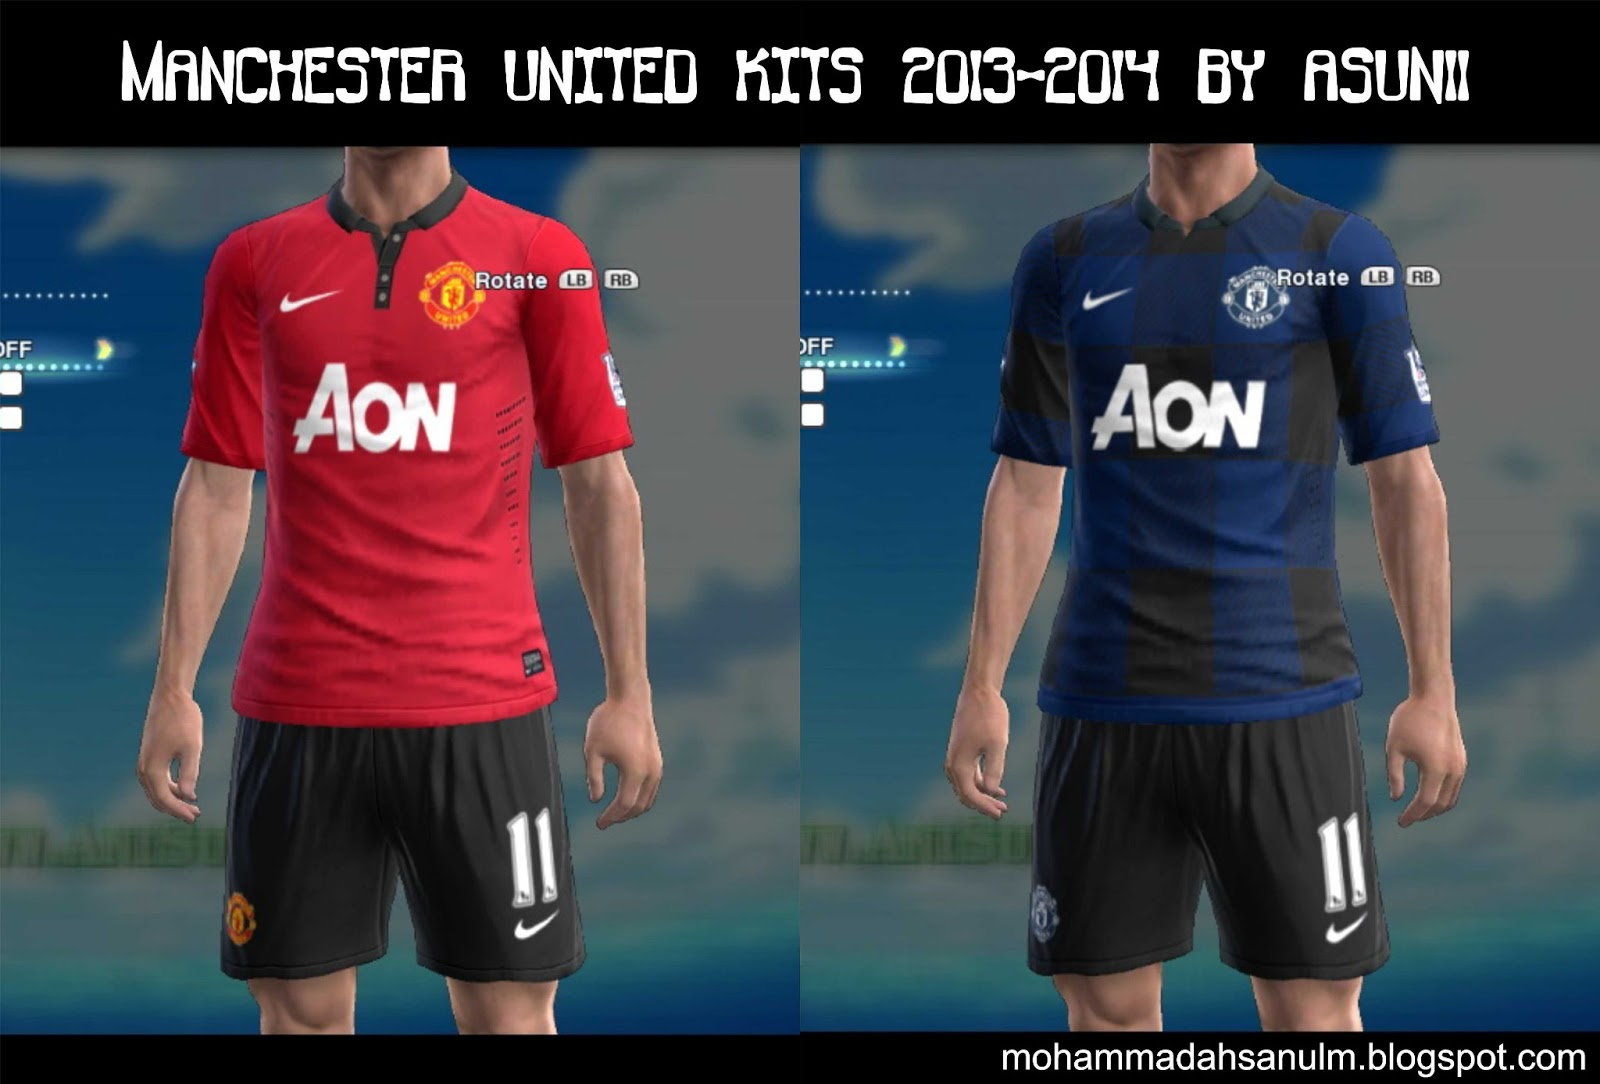 Pes-modif: Download Manchester United Kits 13-14 By Asun11